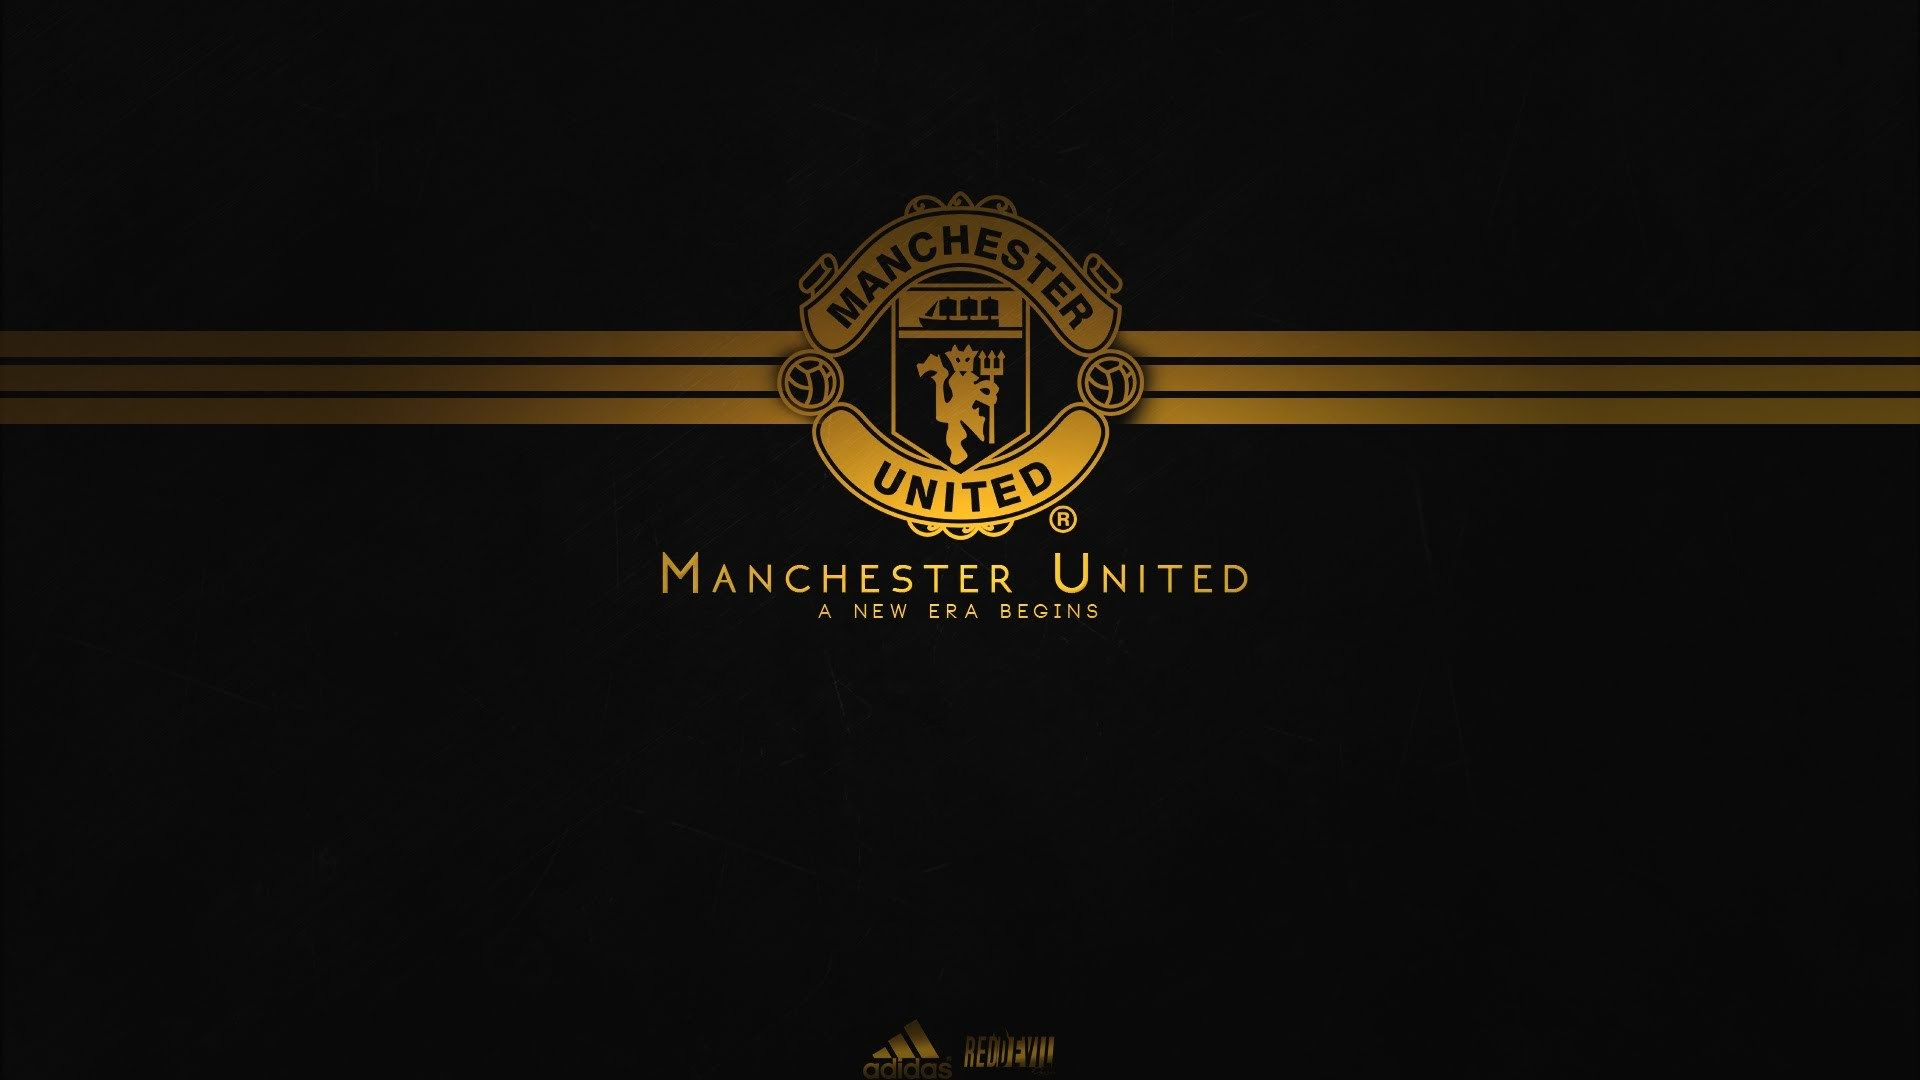 Manchester United Best Wallpapers Free Manchester United Wallpaper Manchester United Manchester United Wallpapers Iphone